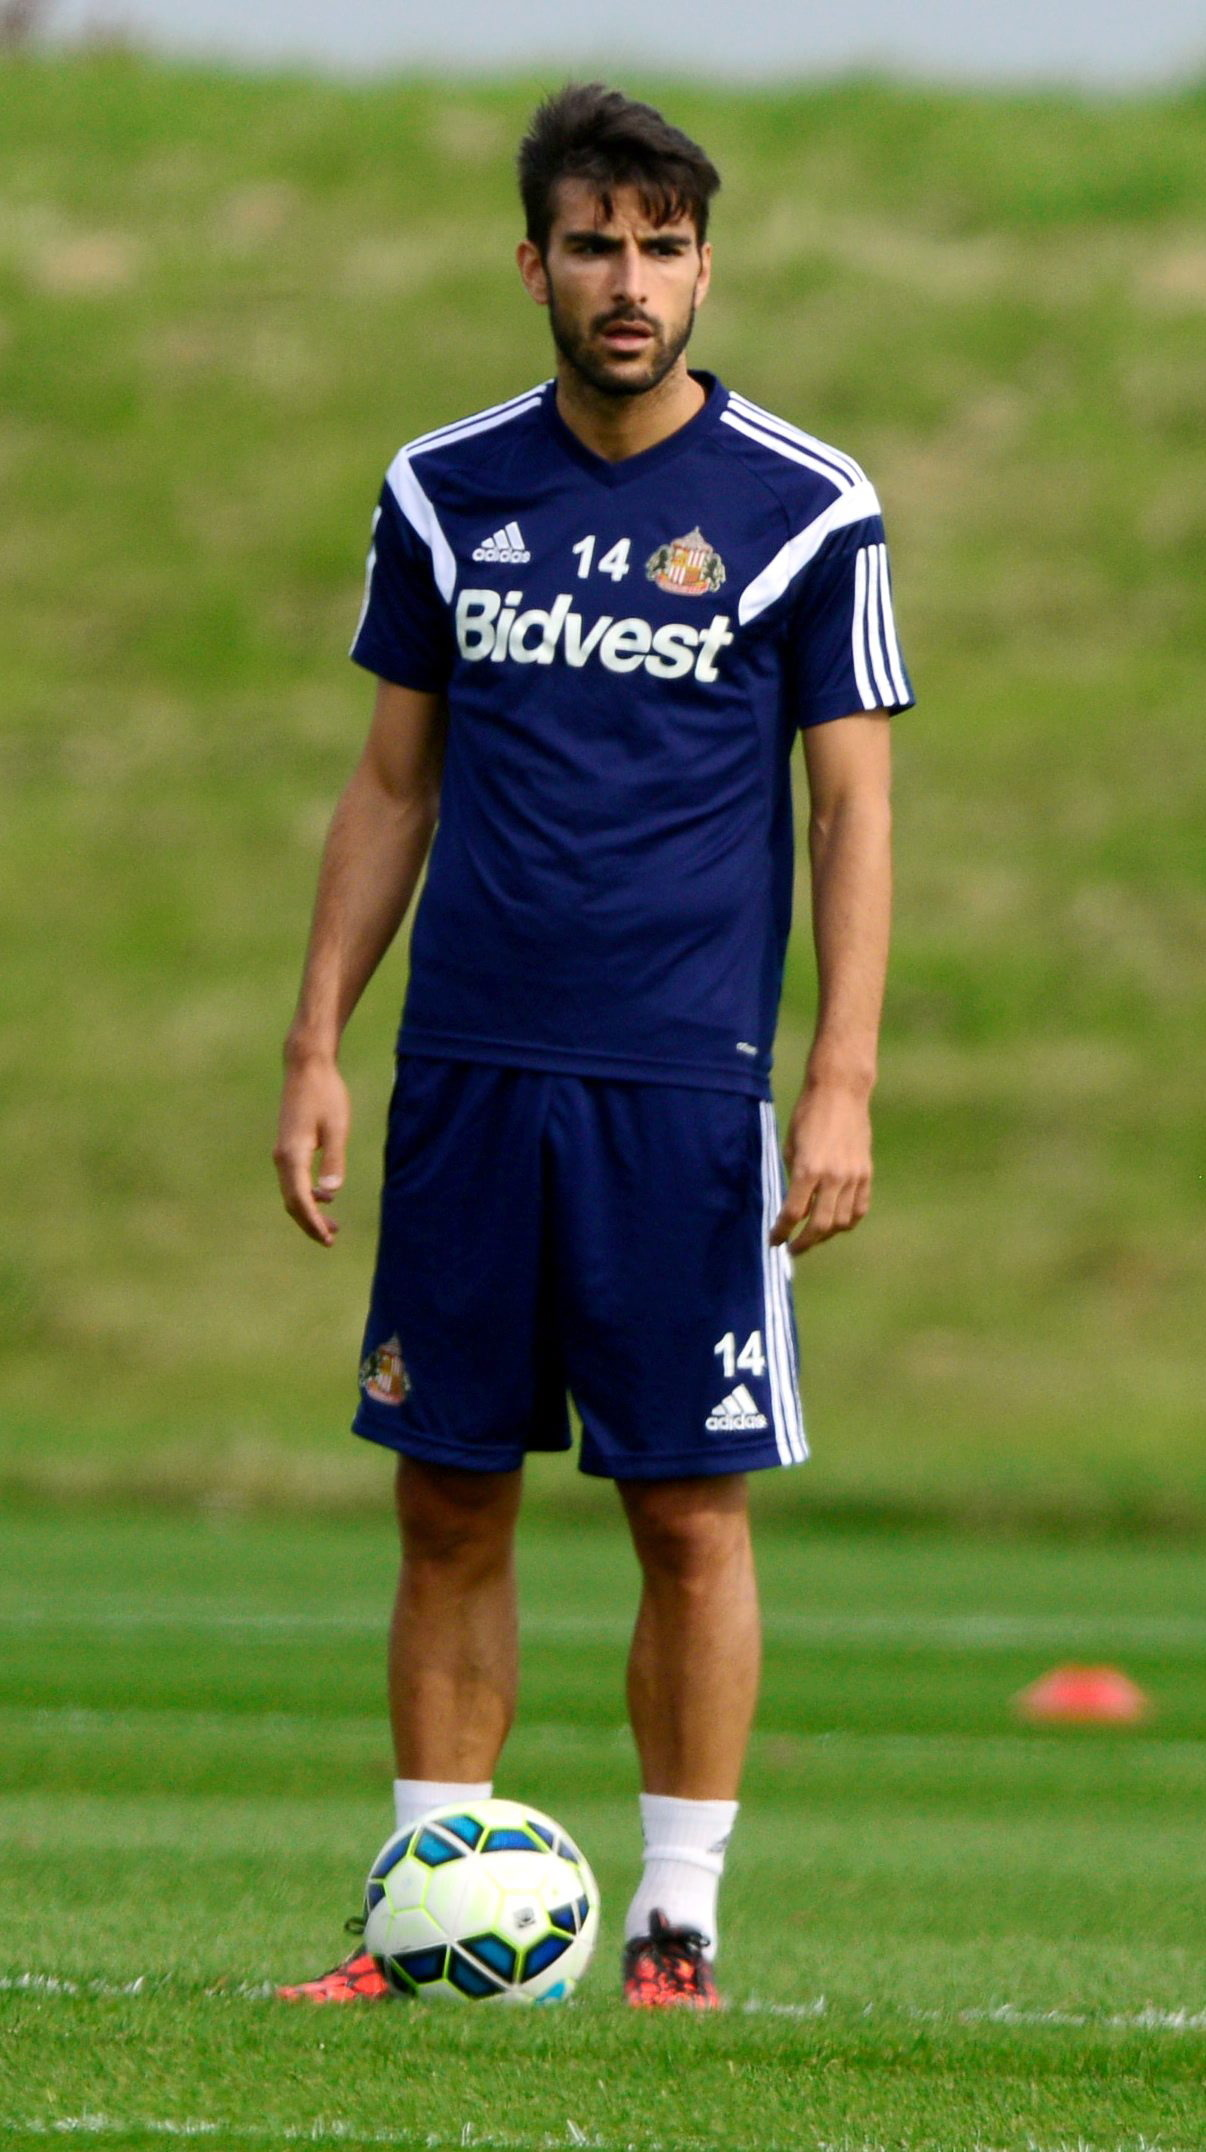 Summer recruit: Spaniard Jordi Gomez arrived at Sunderland with experience of playing in England with Wigan and Swansea